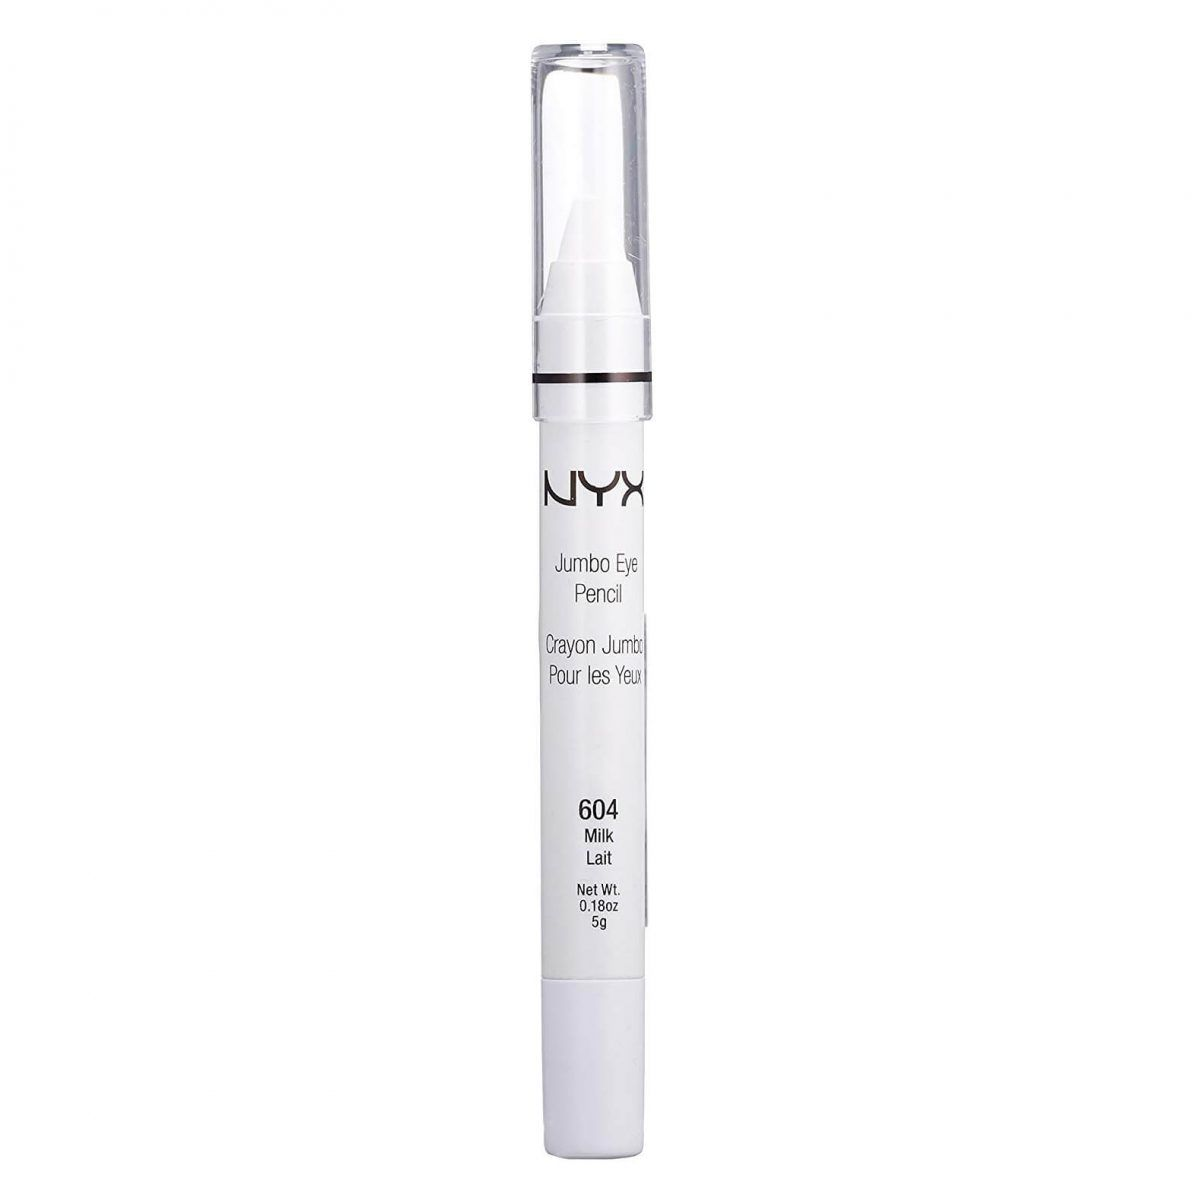 Lápis Jumbo Eye Pencil 604 Milk NYX